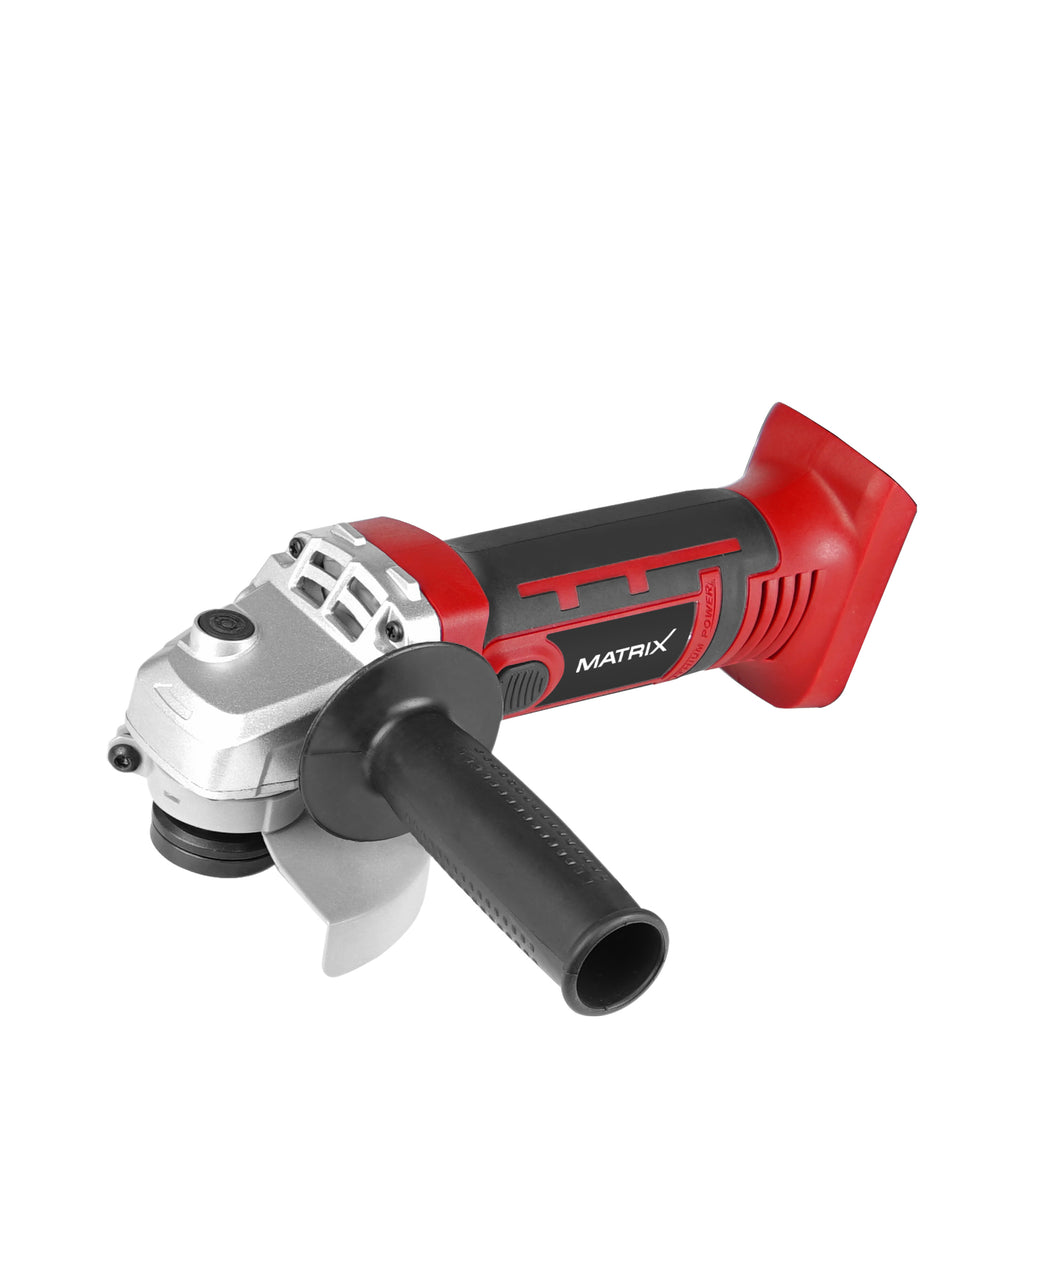 20v X-ONE Cordless Angle Grinder Skin Skin Only